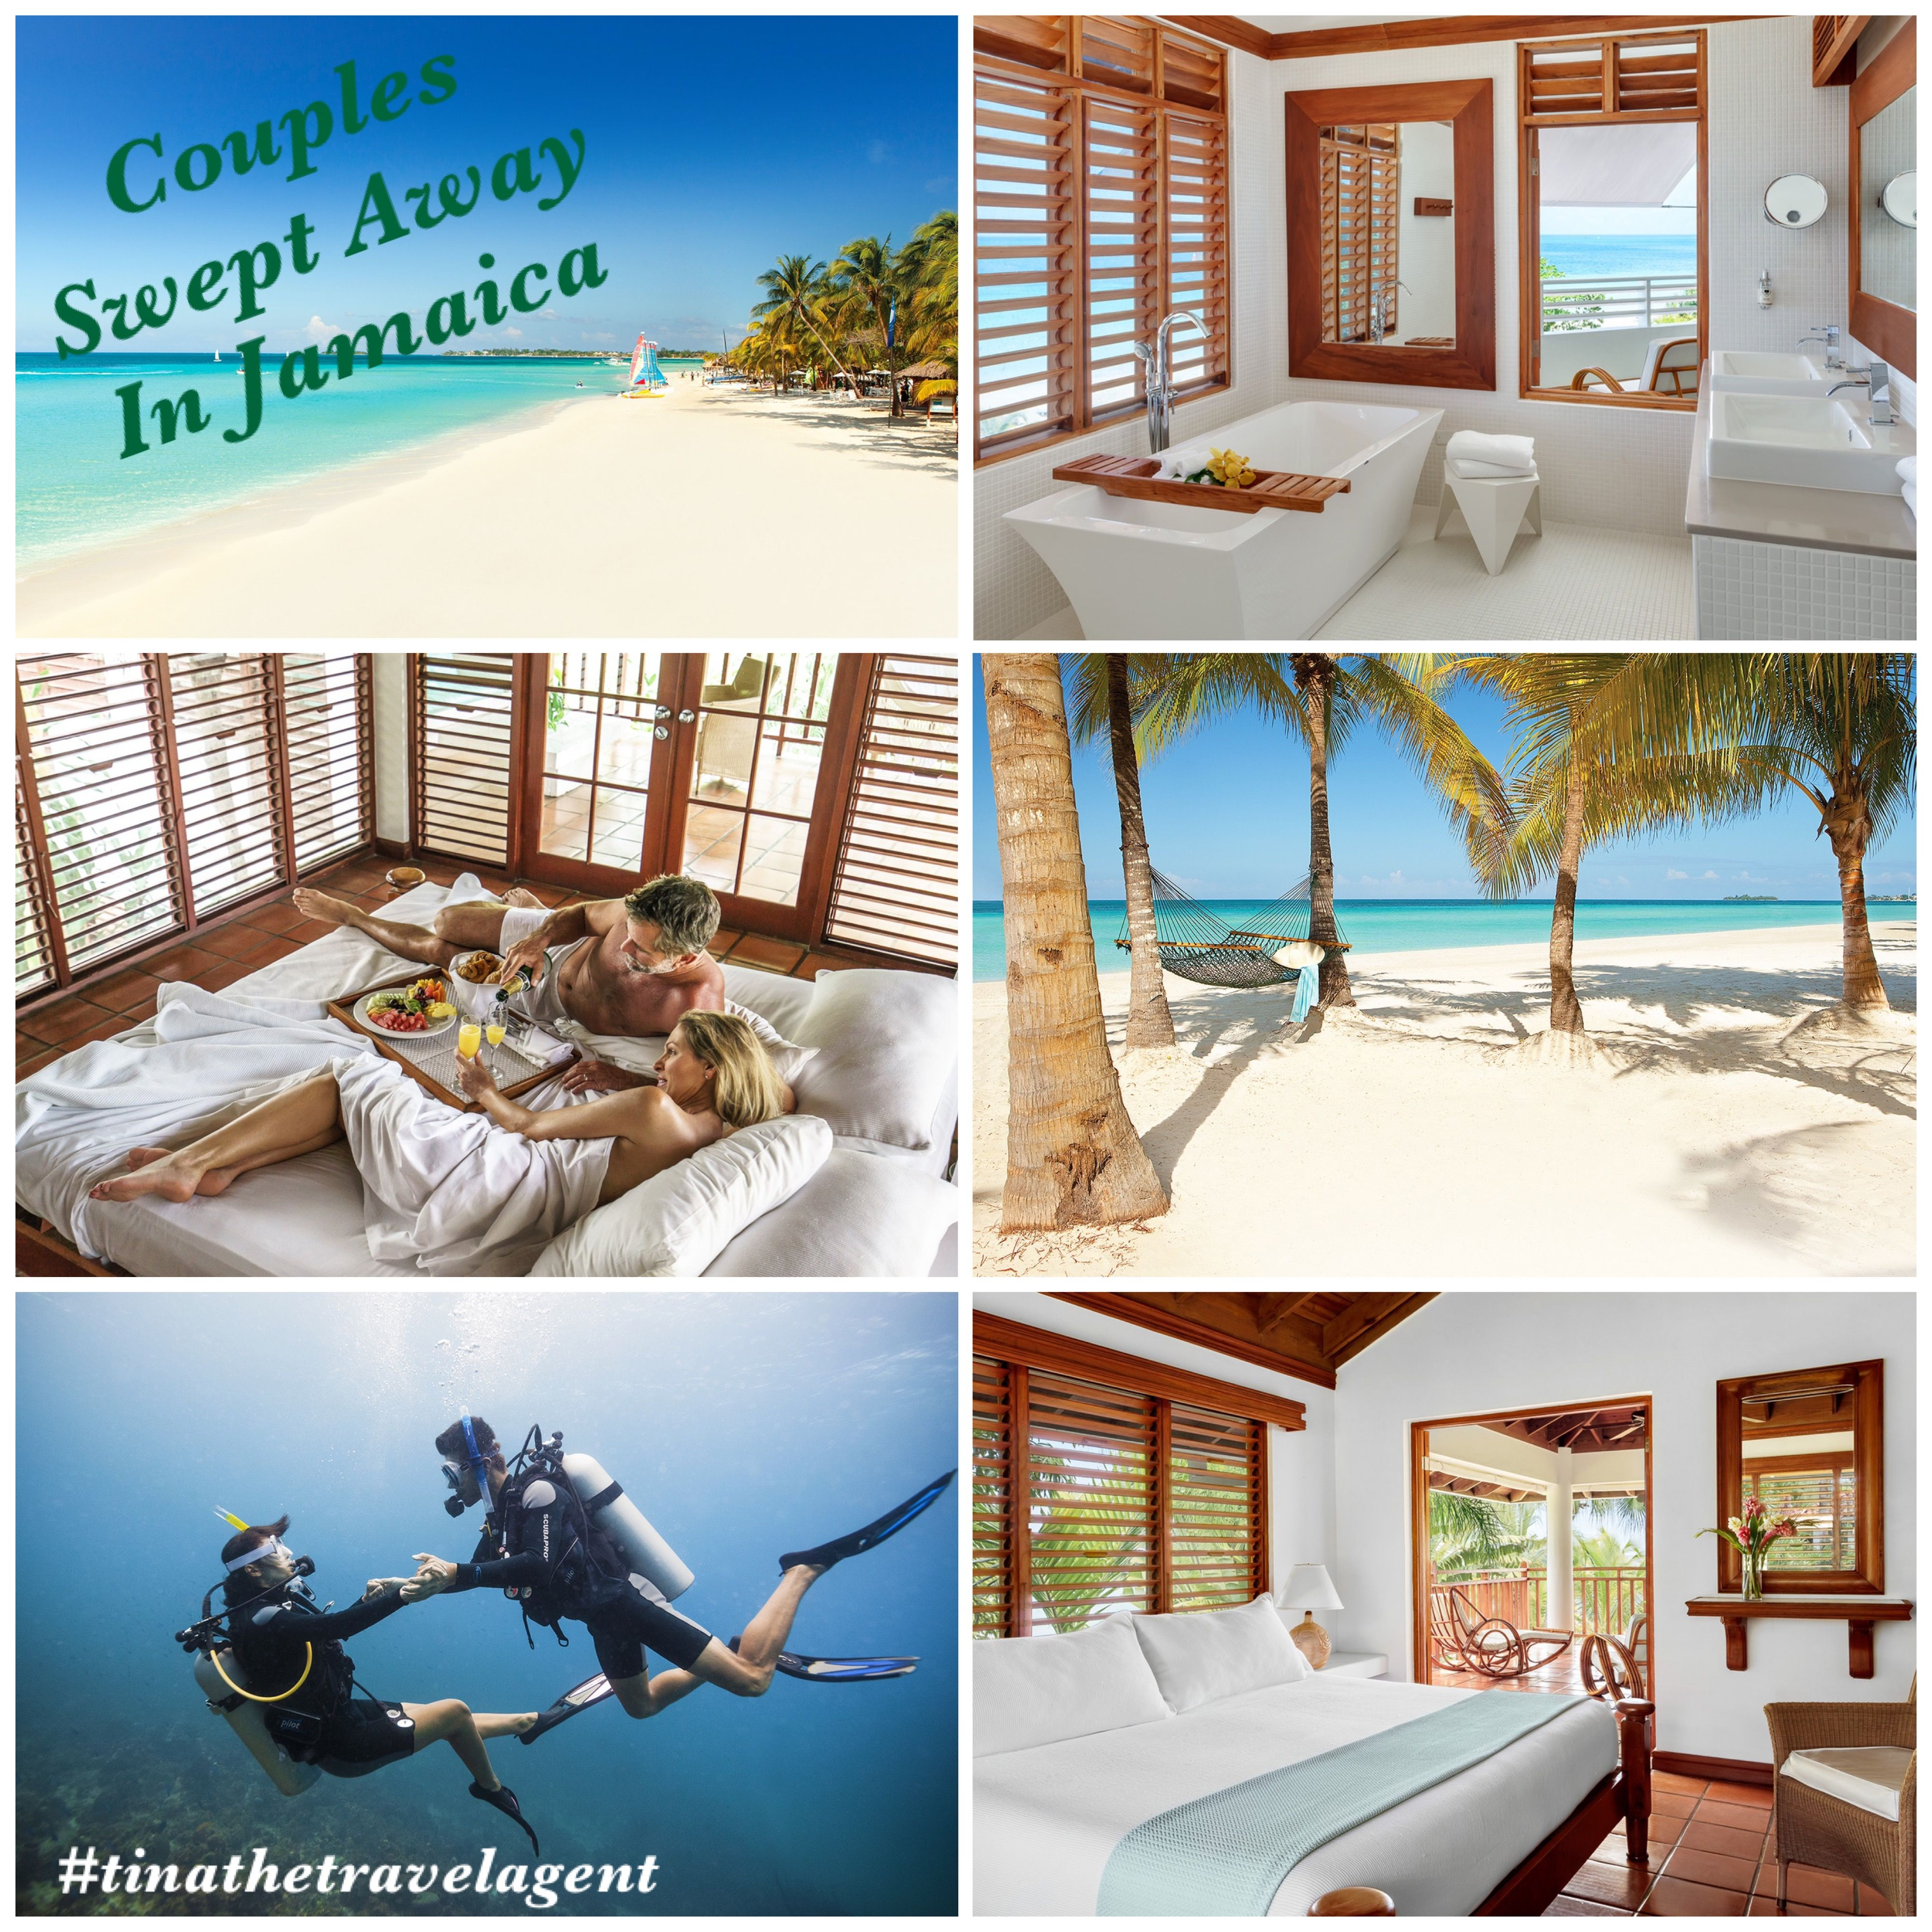 Idea By Tina Tanner Wdwgetaways On Places To Go Couples Swept Away Couples Swept Away Jamaica Places To Go